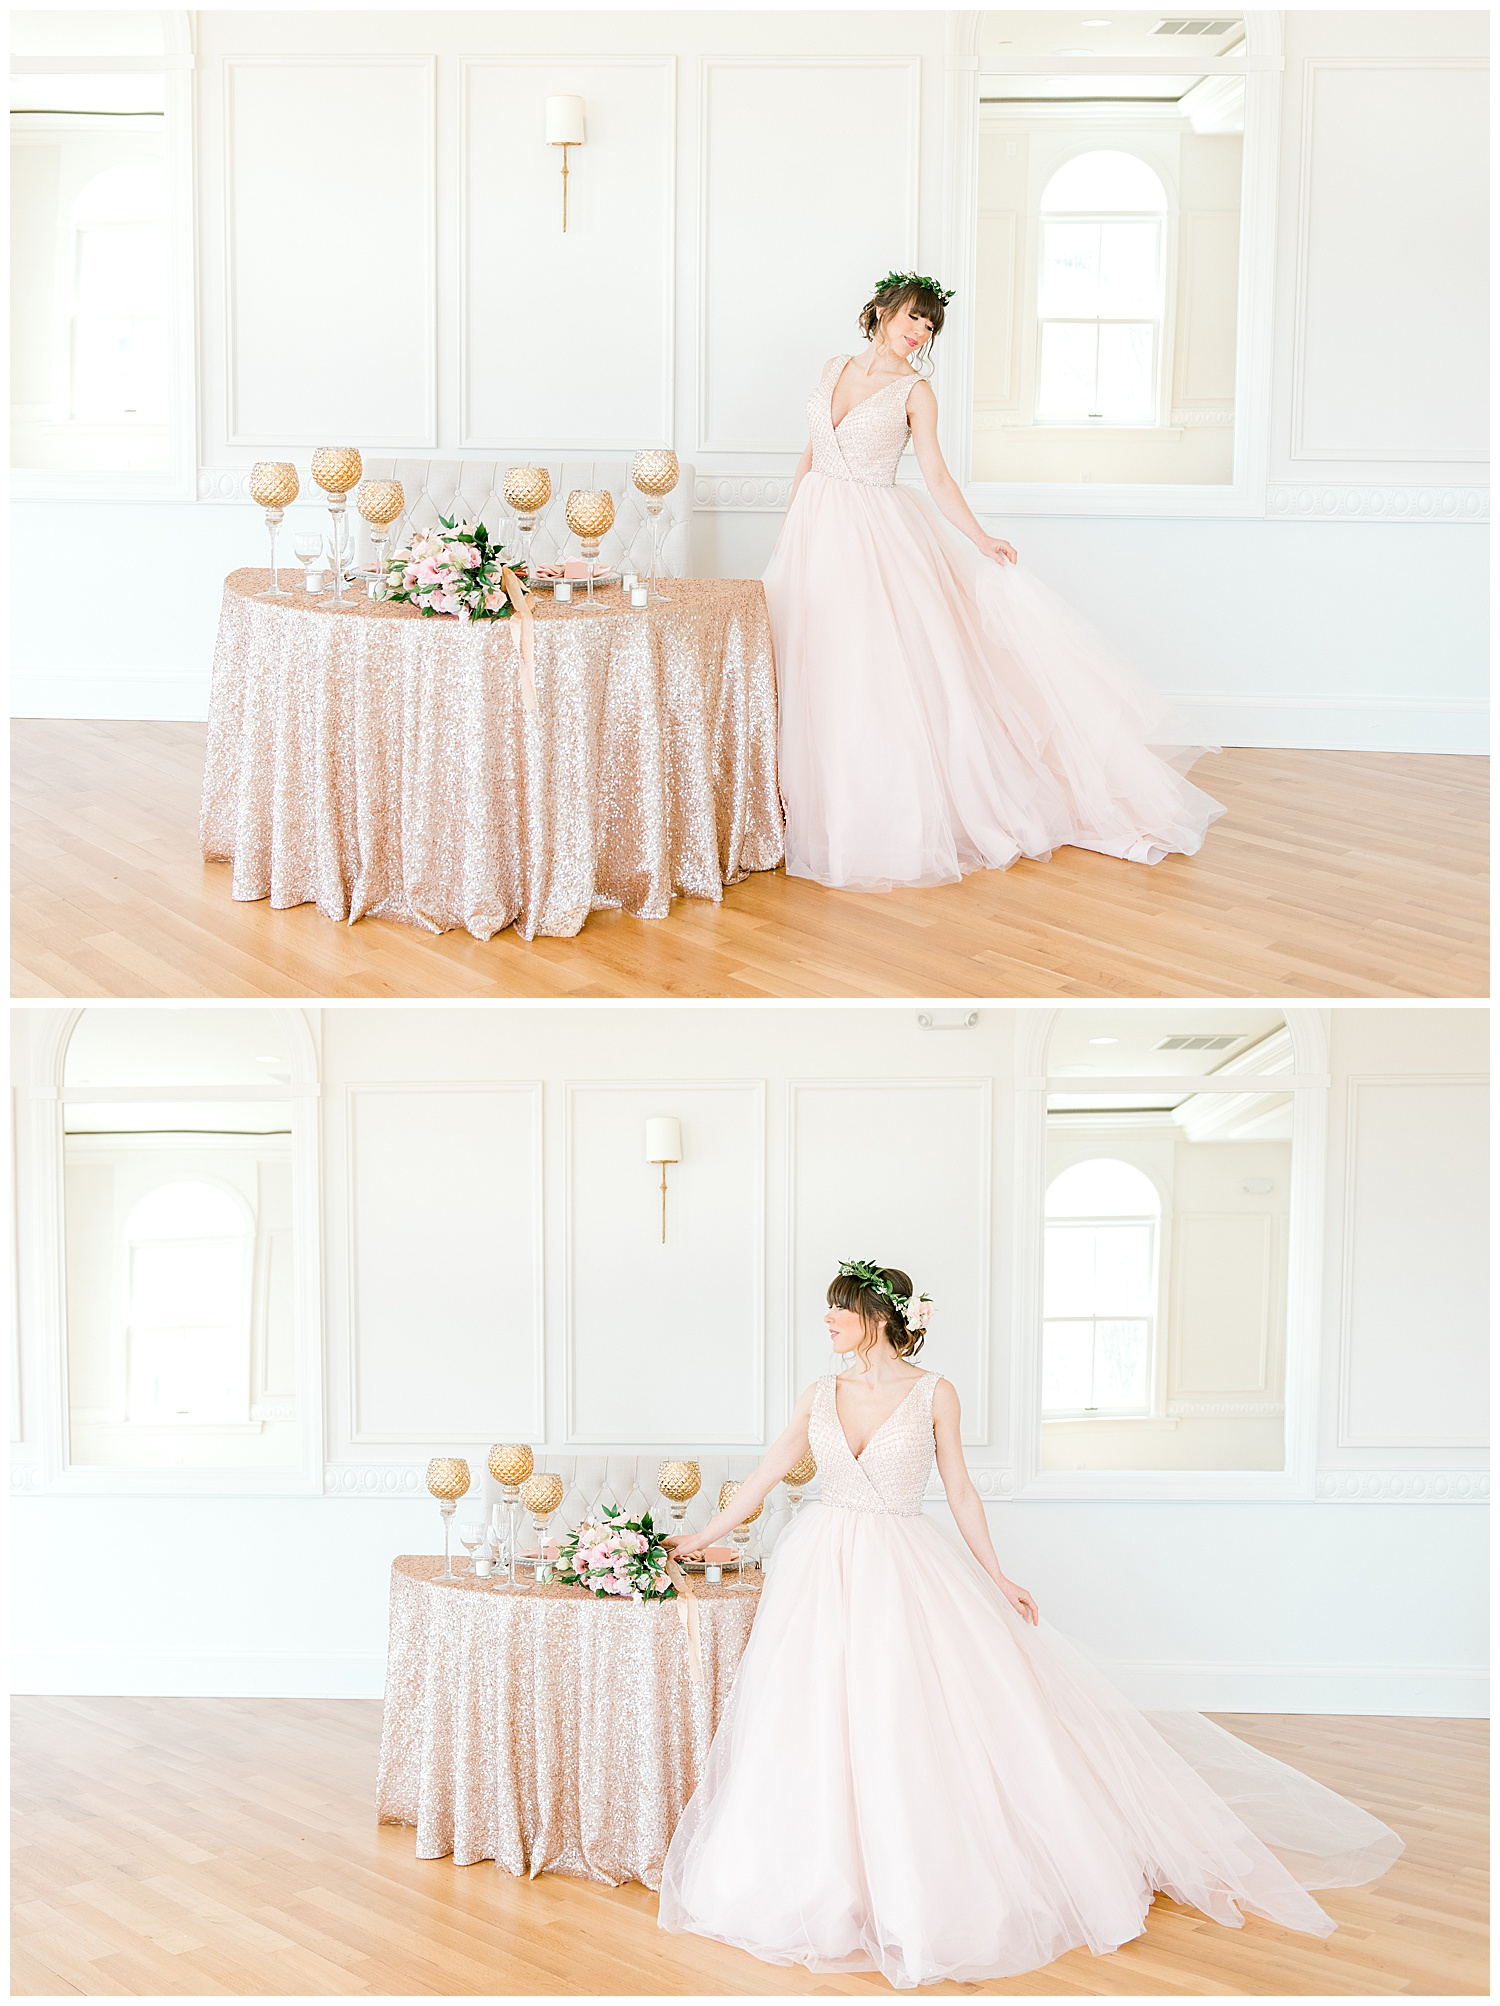 blush-ballerina-wedding-photography-newport-rhode-island-16.jpg